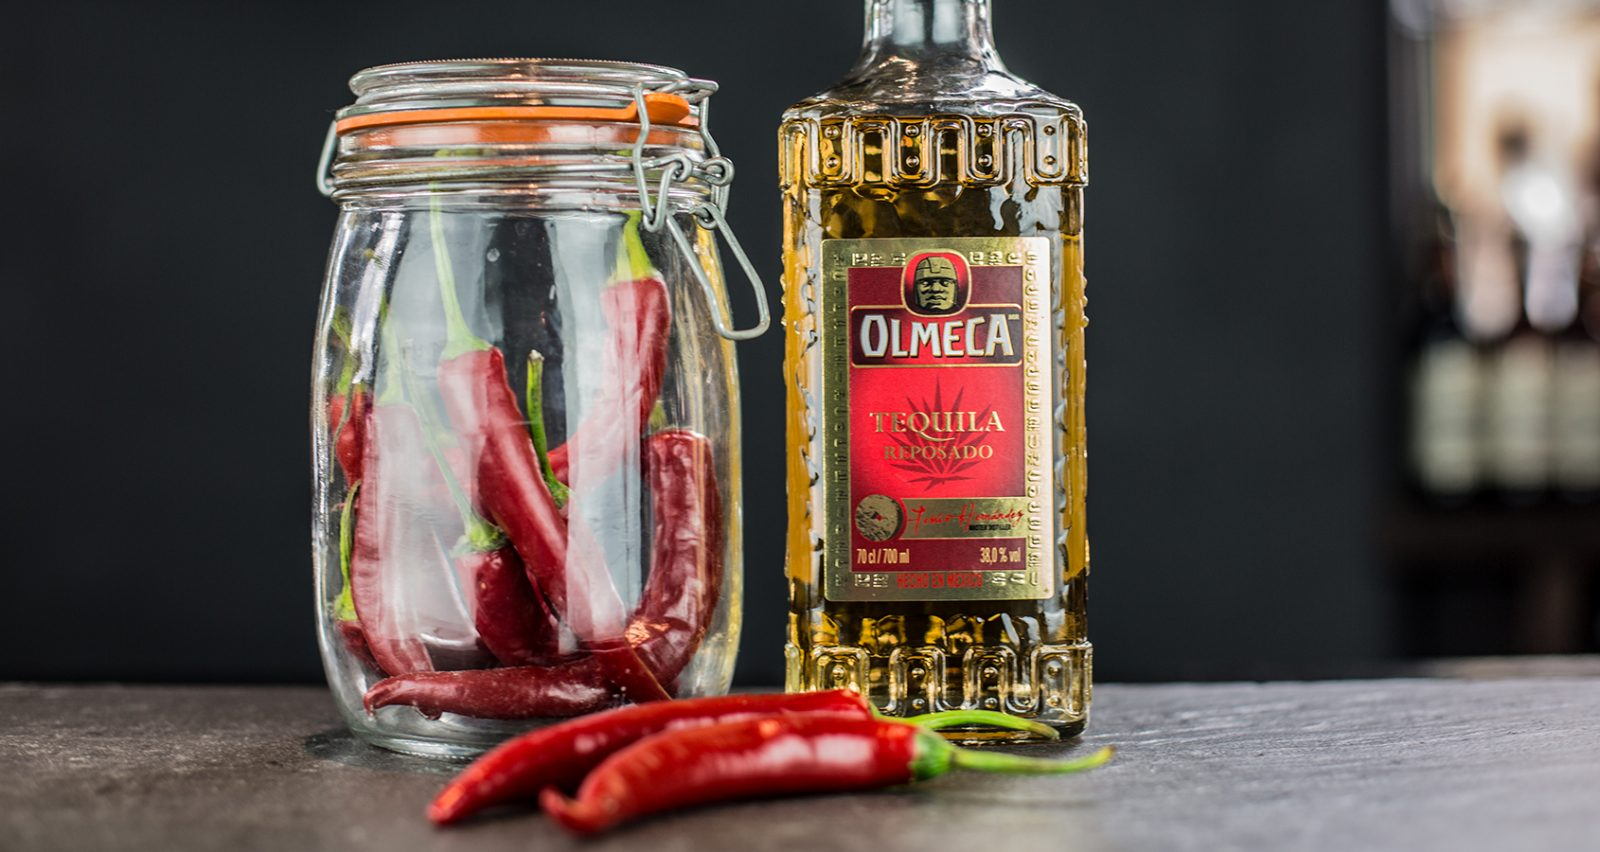 Chilli infused tequila